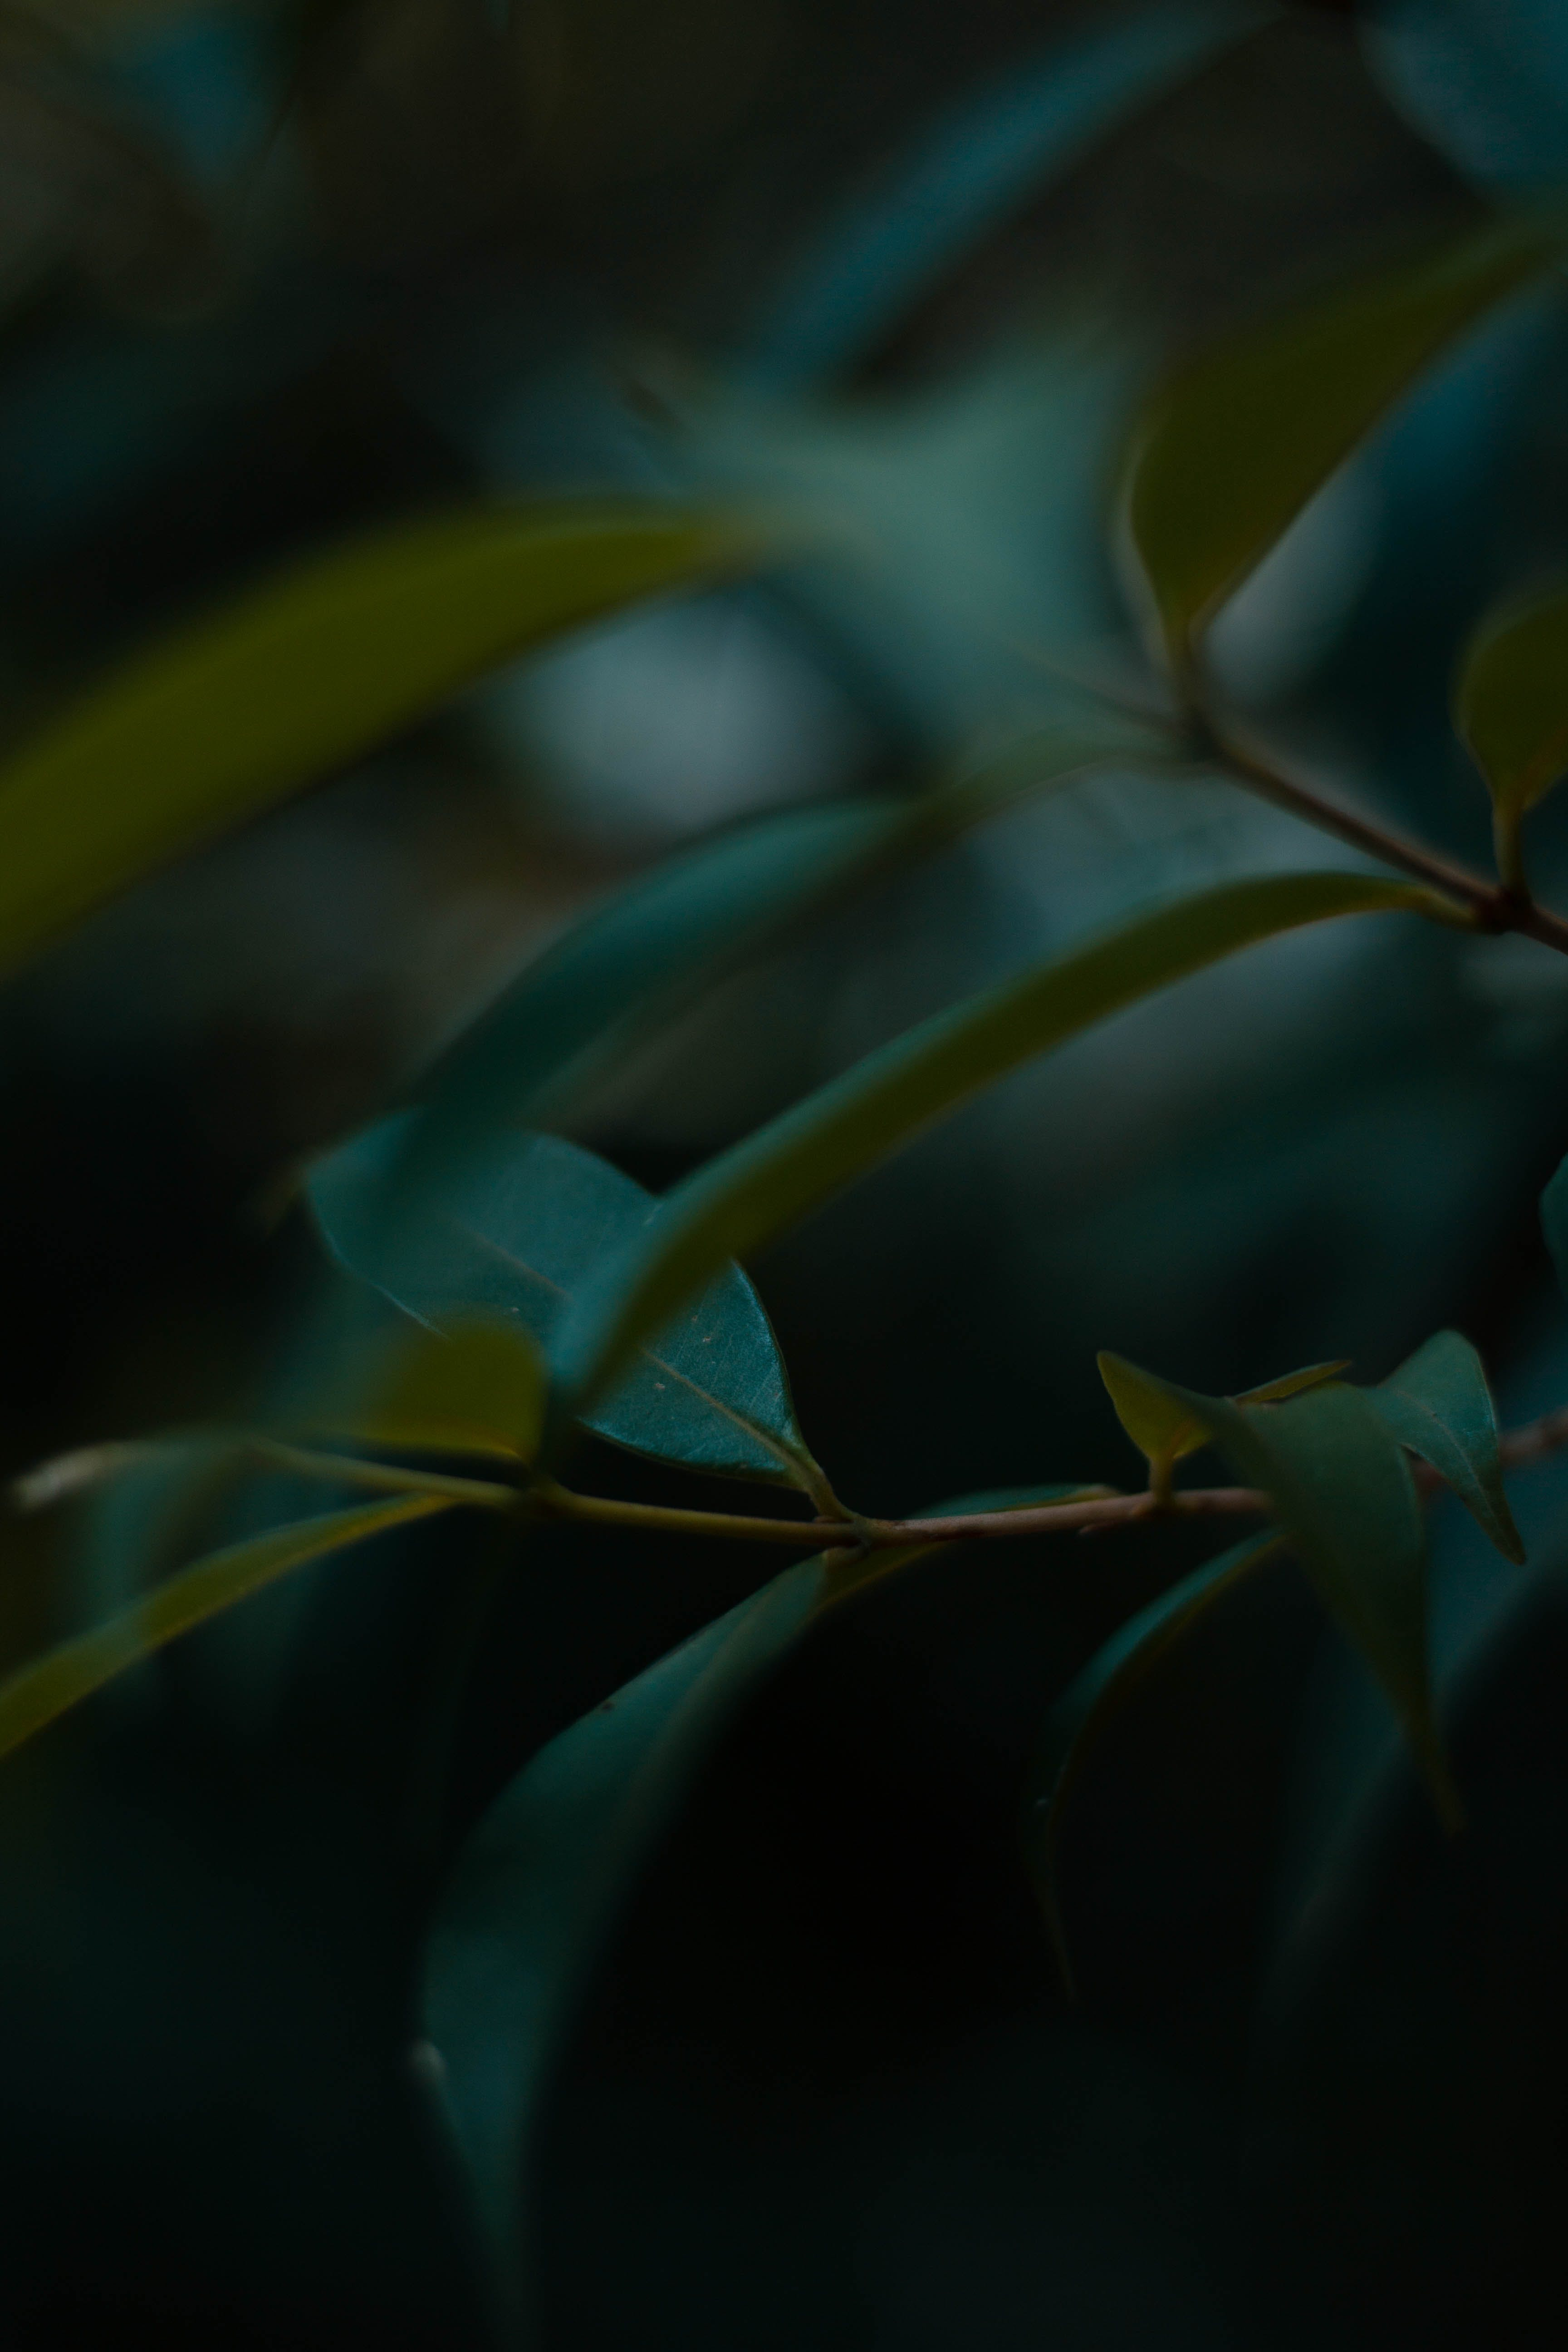 Free stock photo of green leaf, nature photography